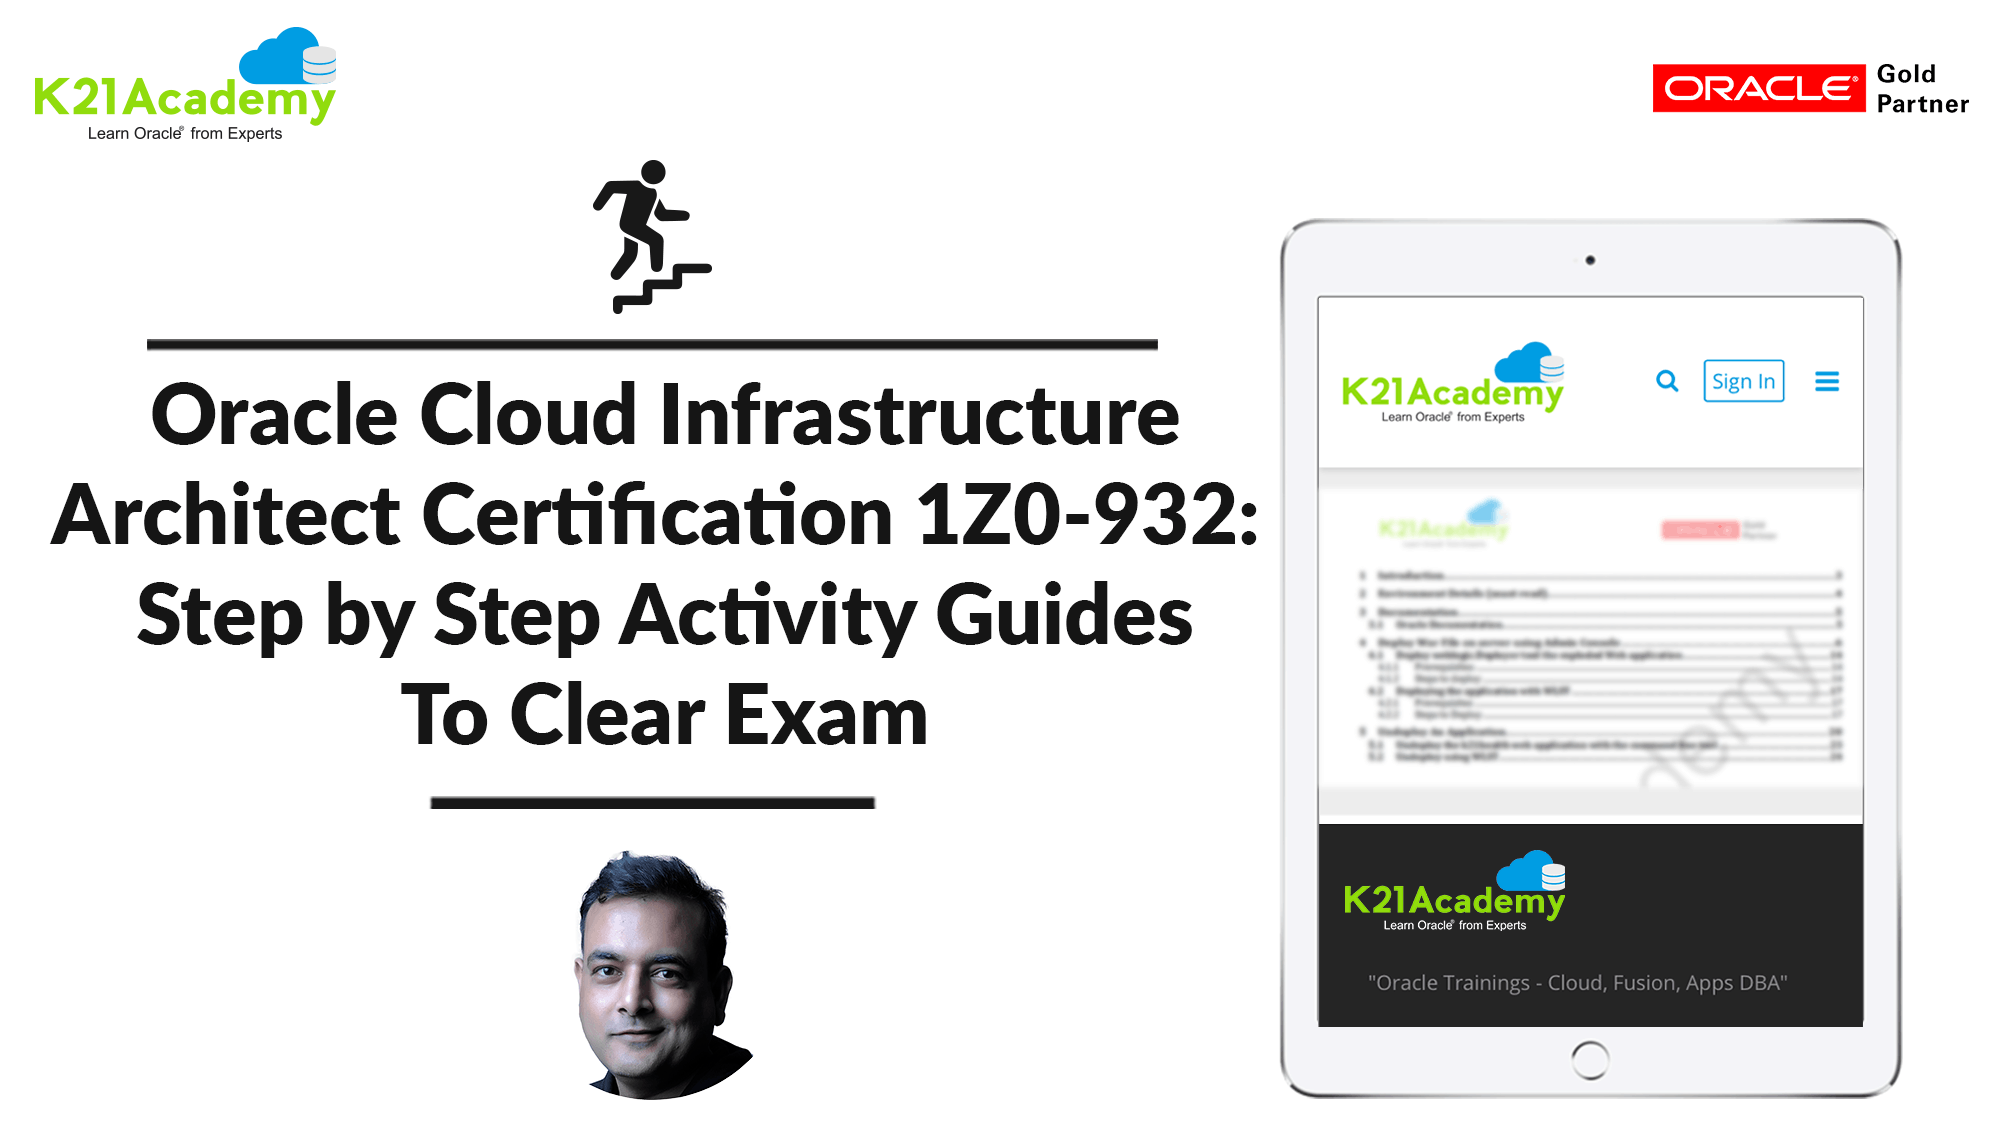 Oracle Cloud Infrastructure Architect (1Z0-932) Hands-on Guides